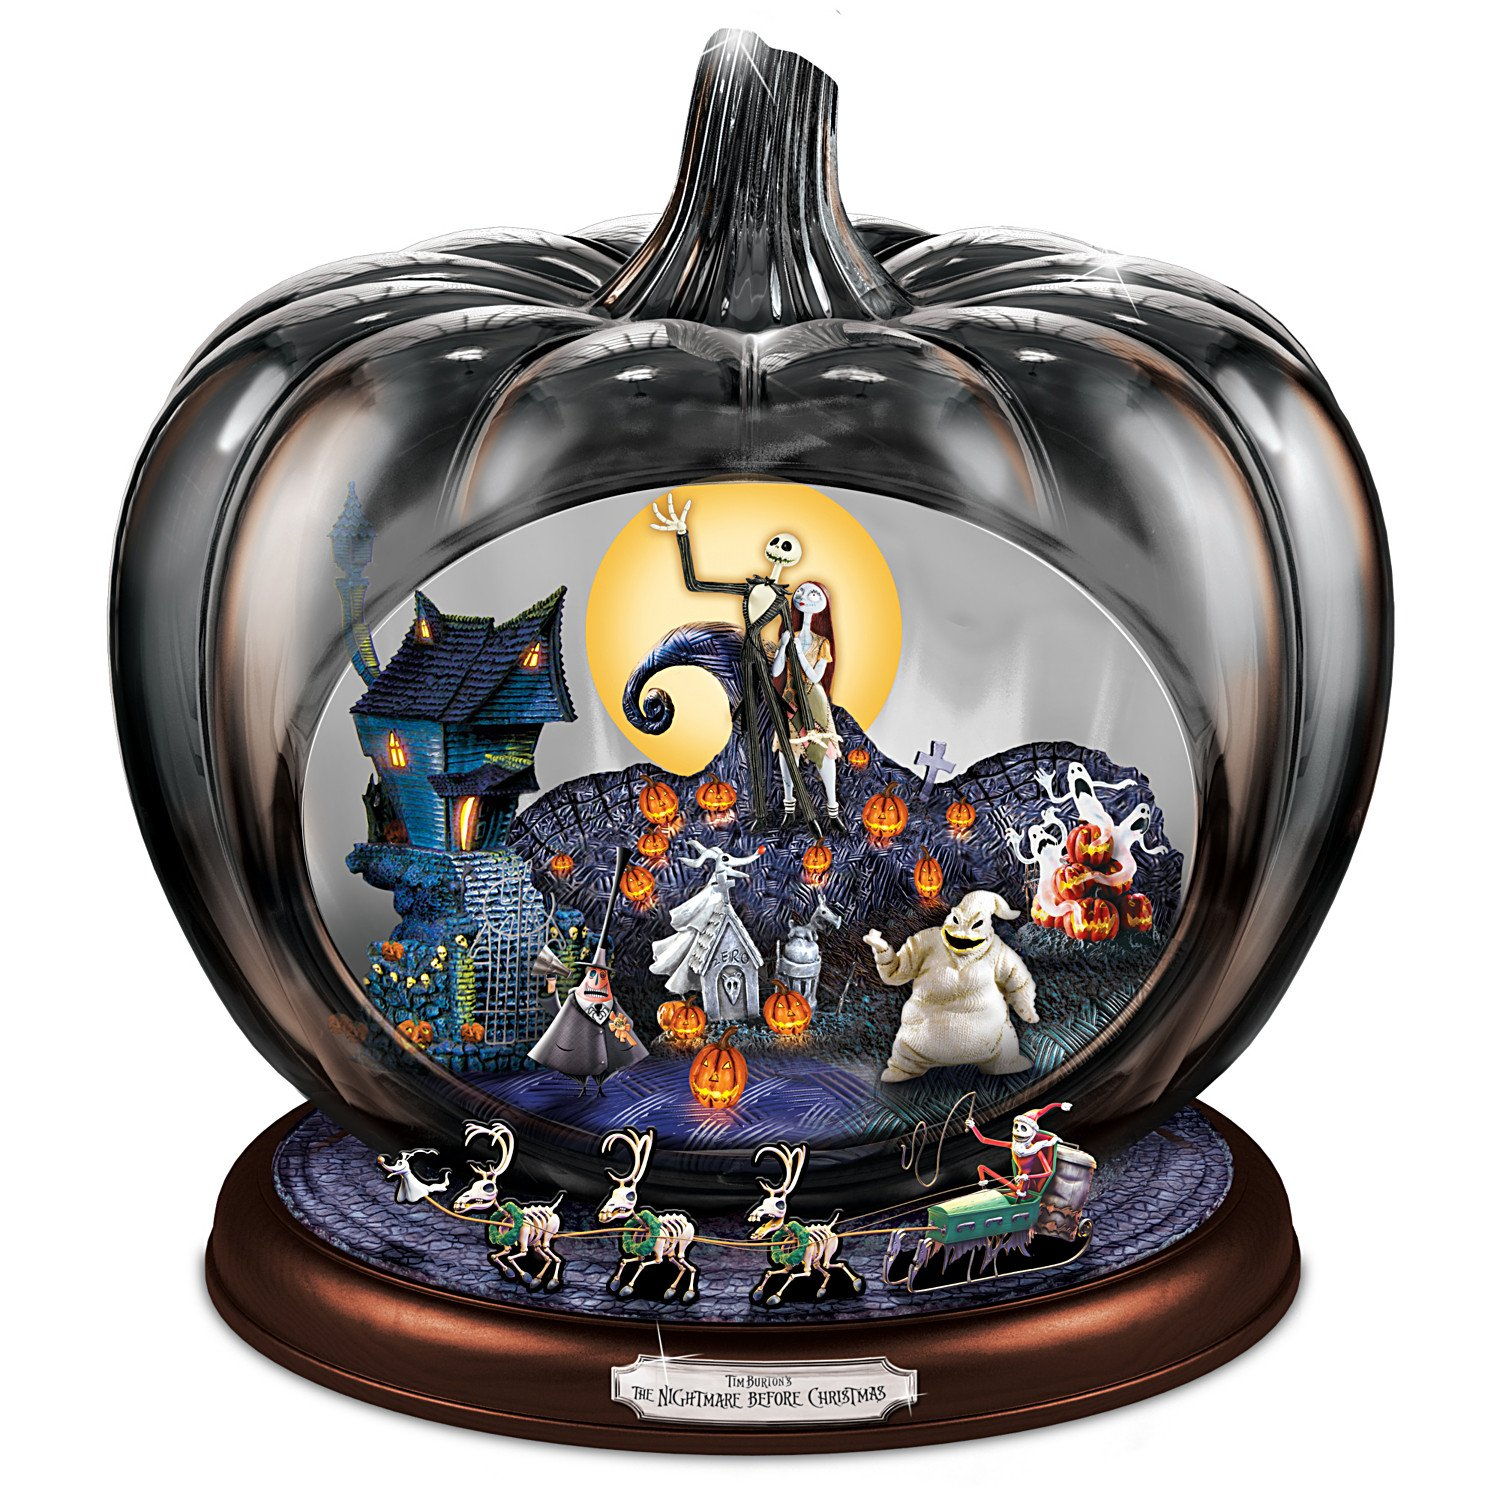 Disney The Nightmare Before Christmas Pumpkin Sculpture: Lights Music And Motion by The Bradford Exchange by Bradford Exchange